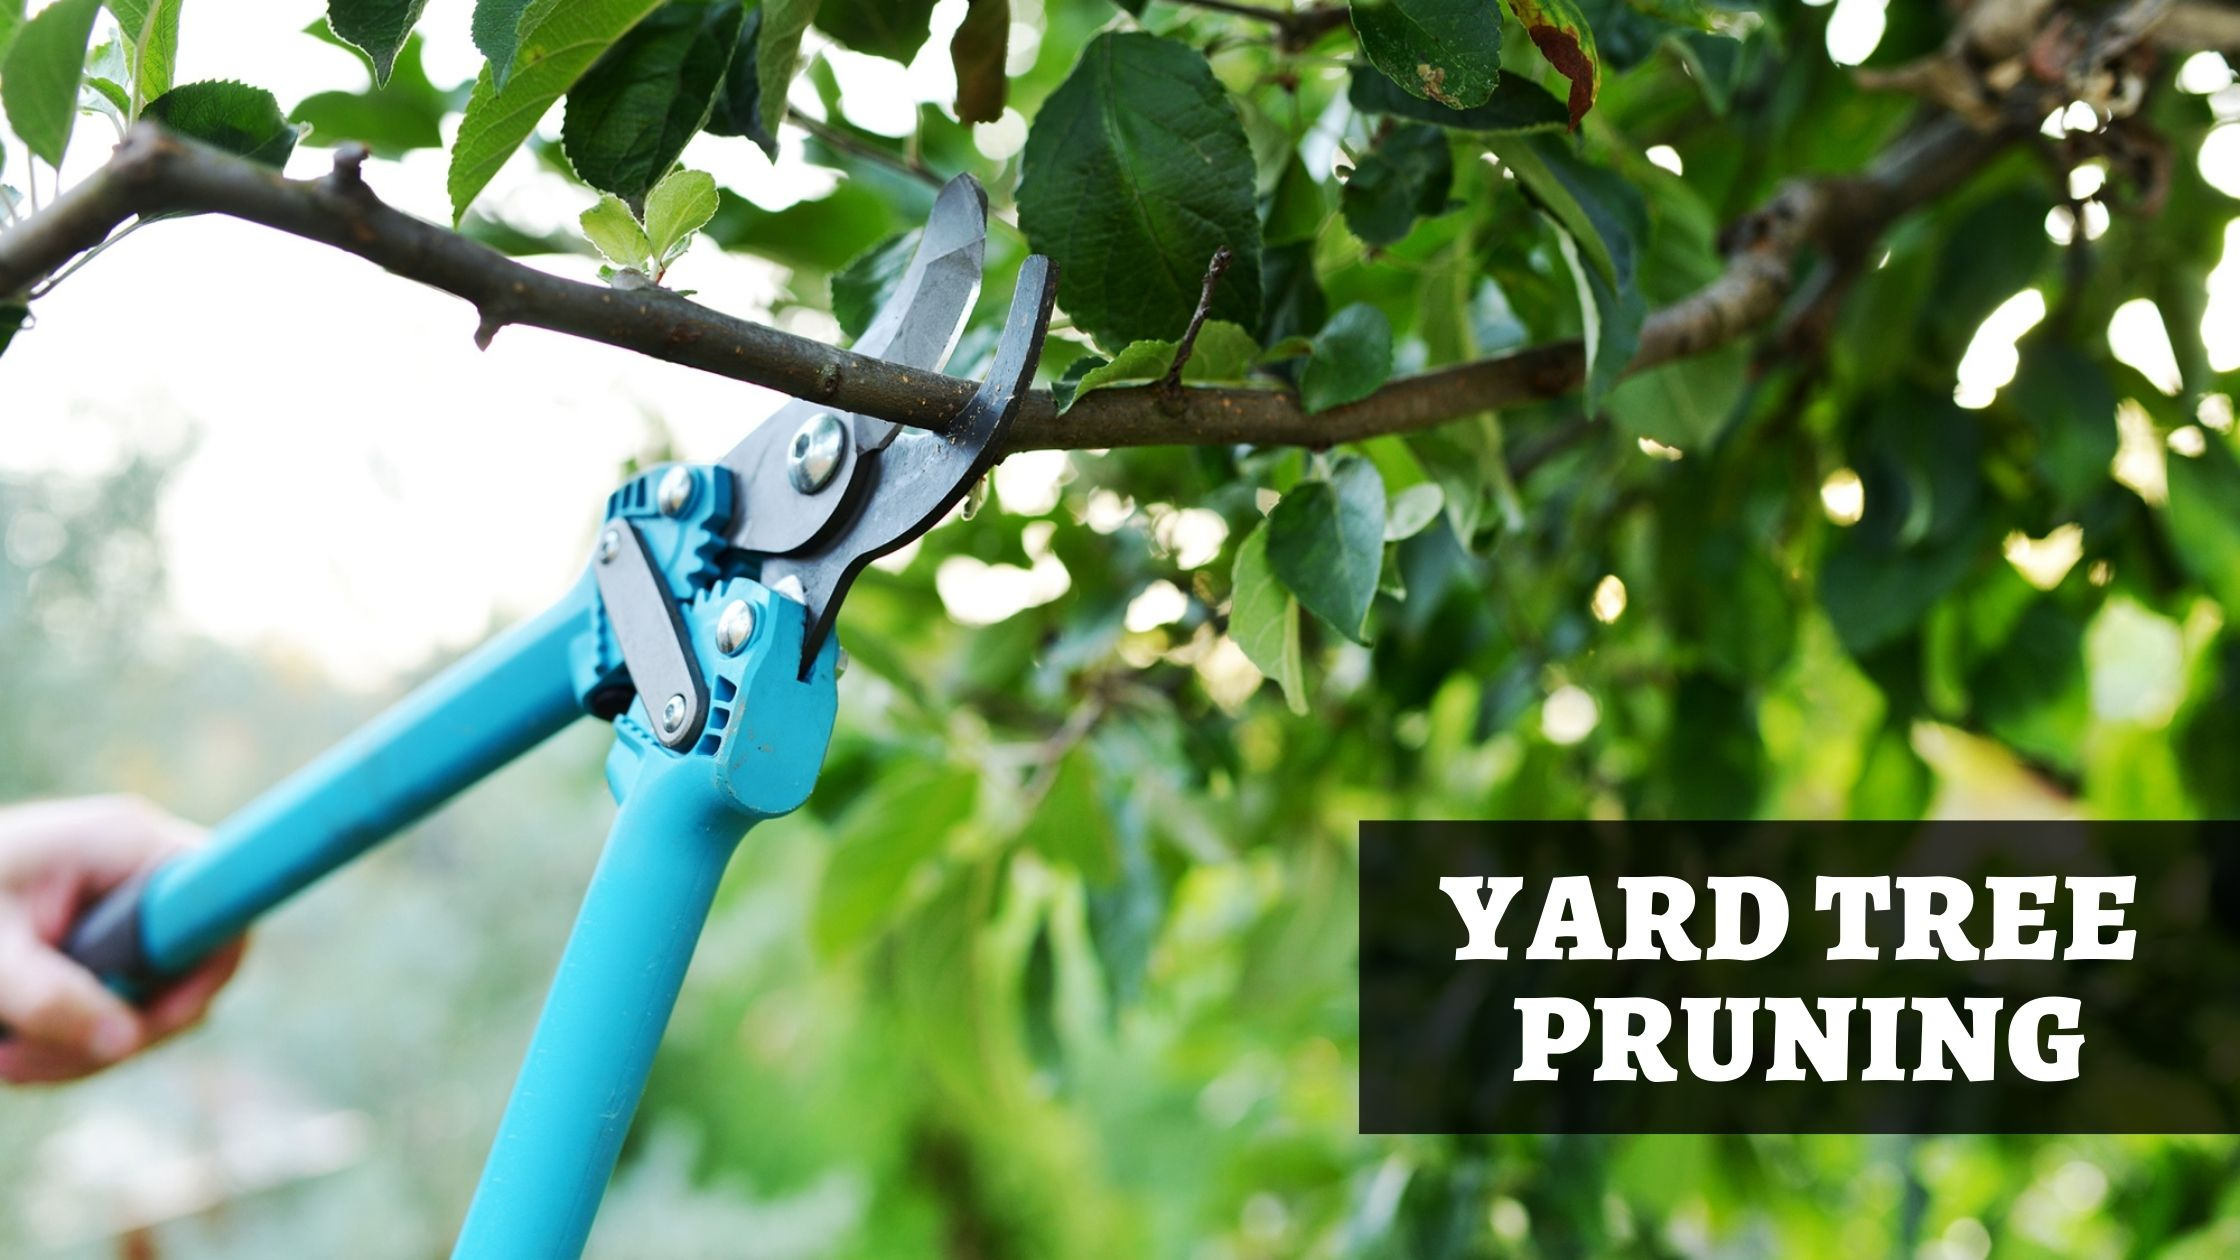 Tree Pruning: How and When to Prune Your Yard Trees? 2021